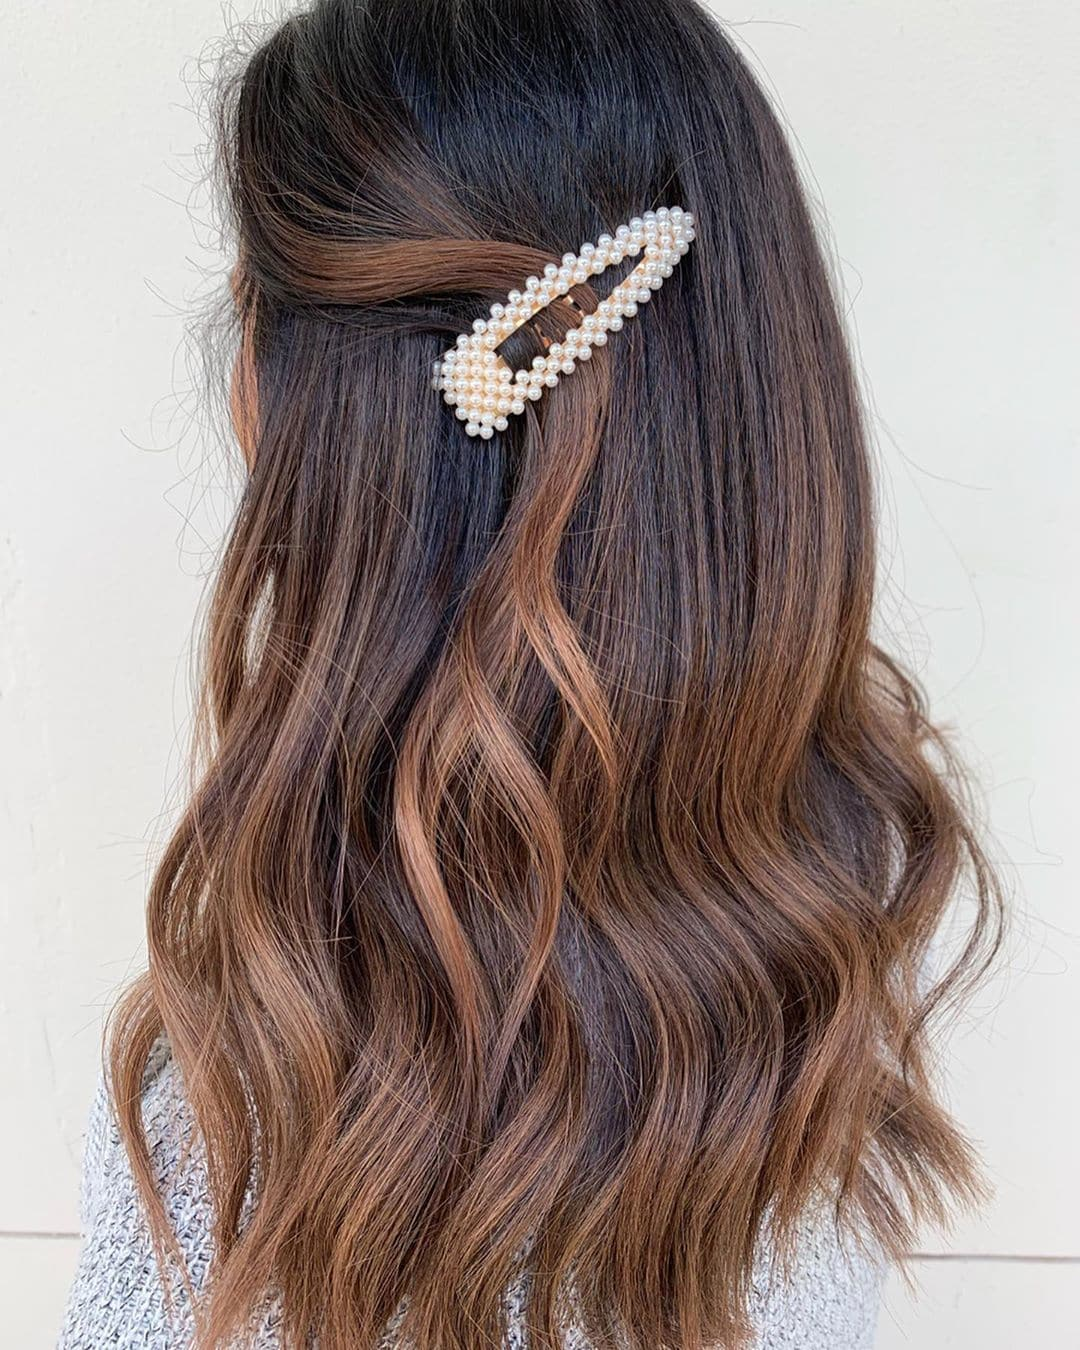 Woman with reverse chestnut brown balayage hair